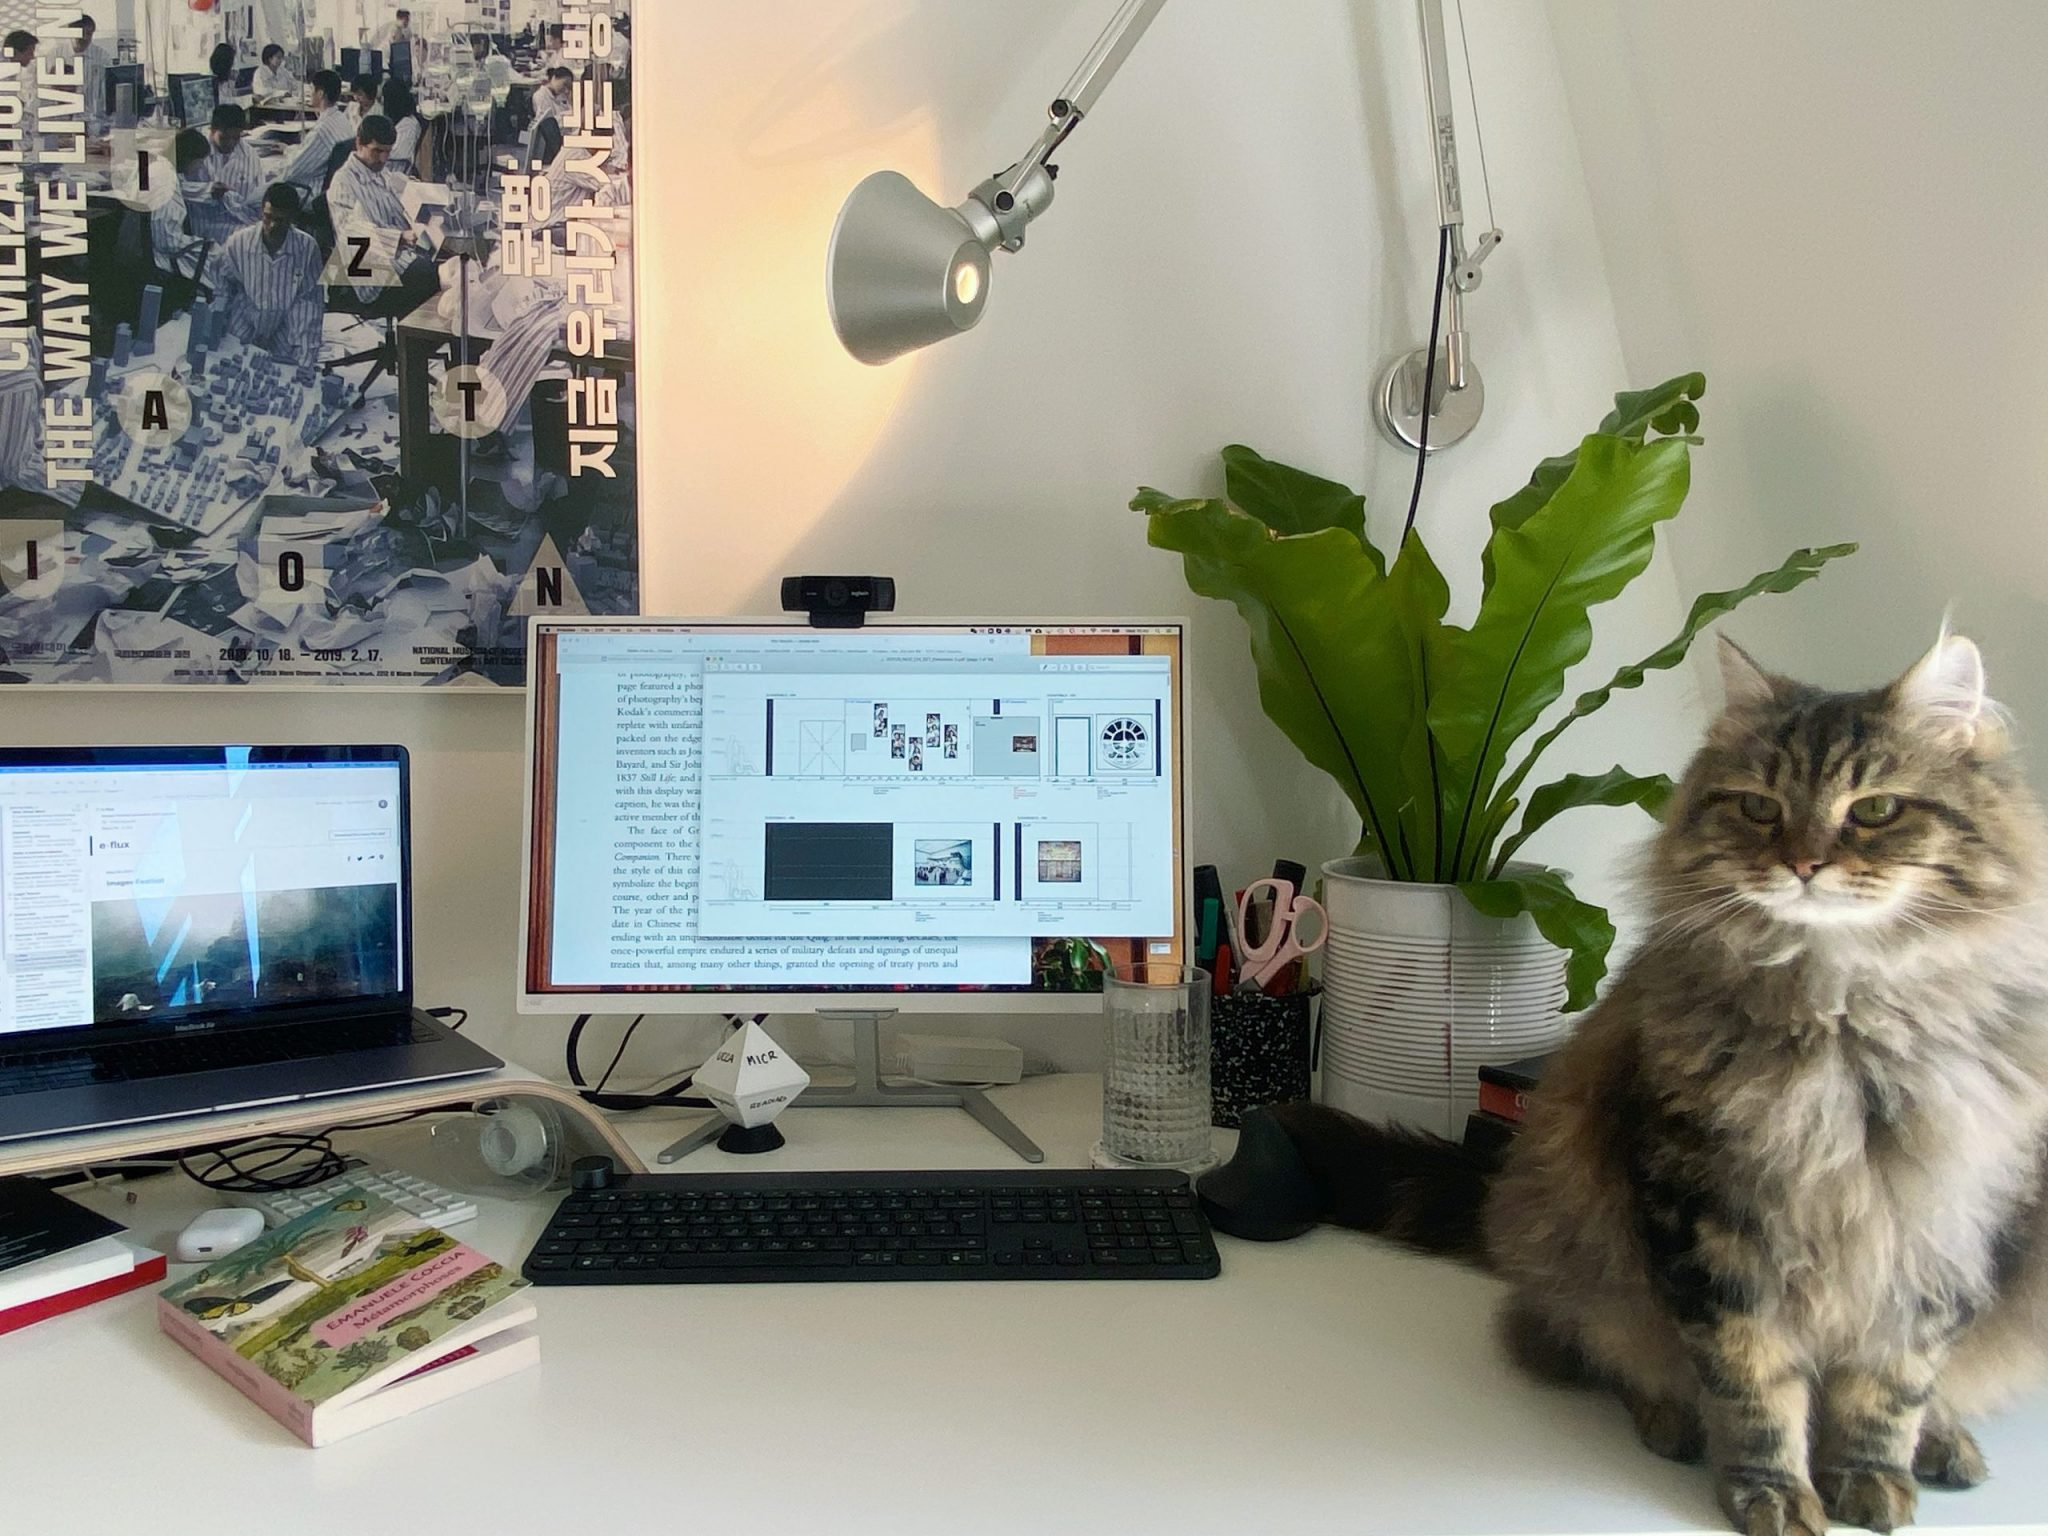 HOLLY ROUSSELL 容思玉 in Lausanne, Switzerland, laptop, cat, WFH, Museum, covid